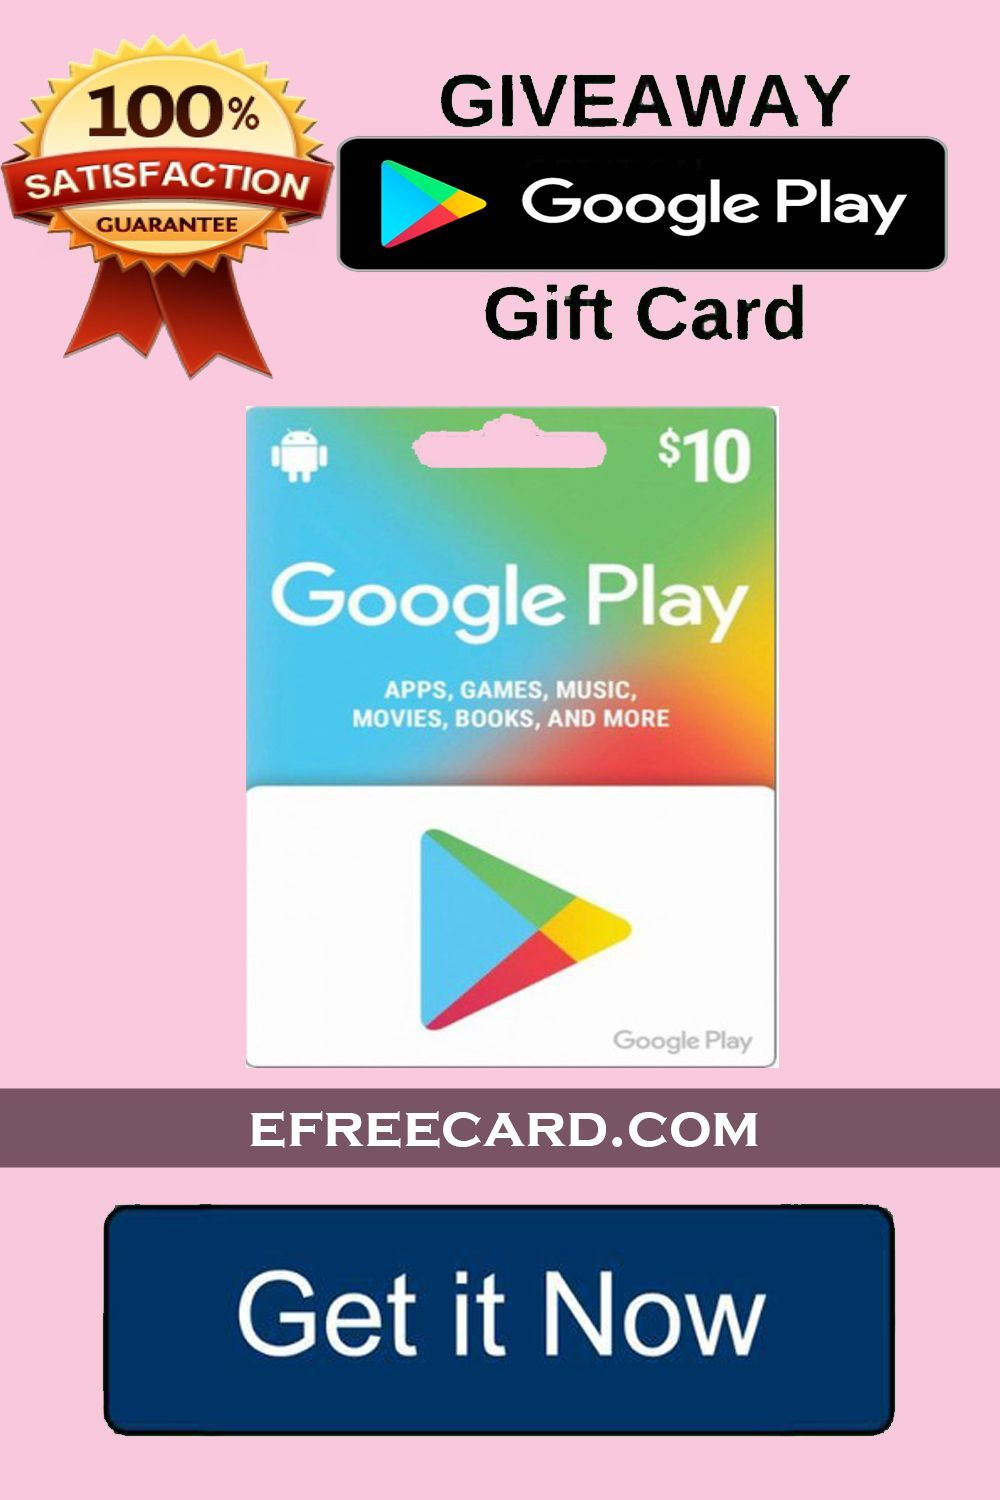 Redeem Code For Playstore Win Playstore Gift Card Free Get A Googleplay Gift Card Google Play Gift Card Amazon Gift Card Free Free Gift Cards Online